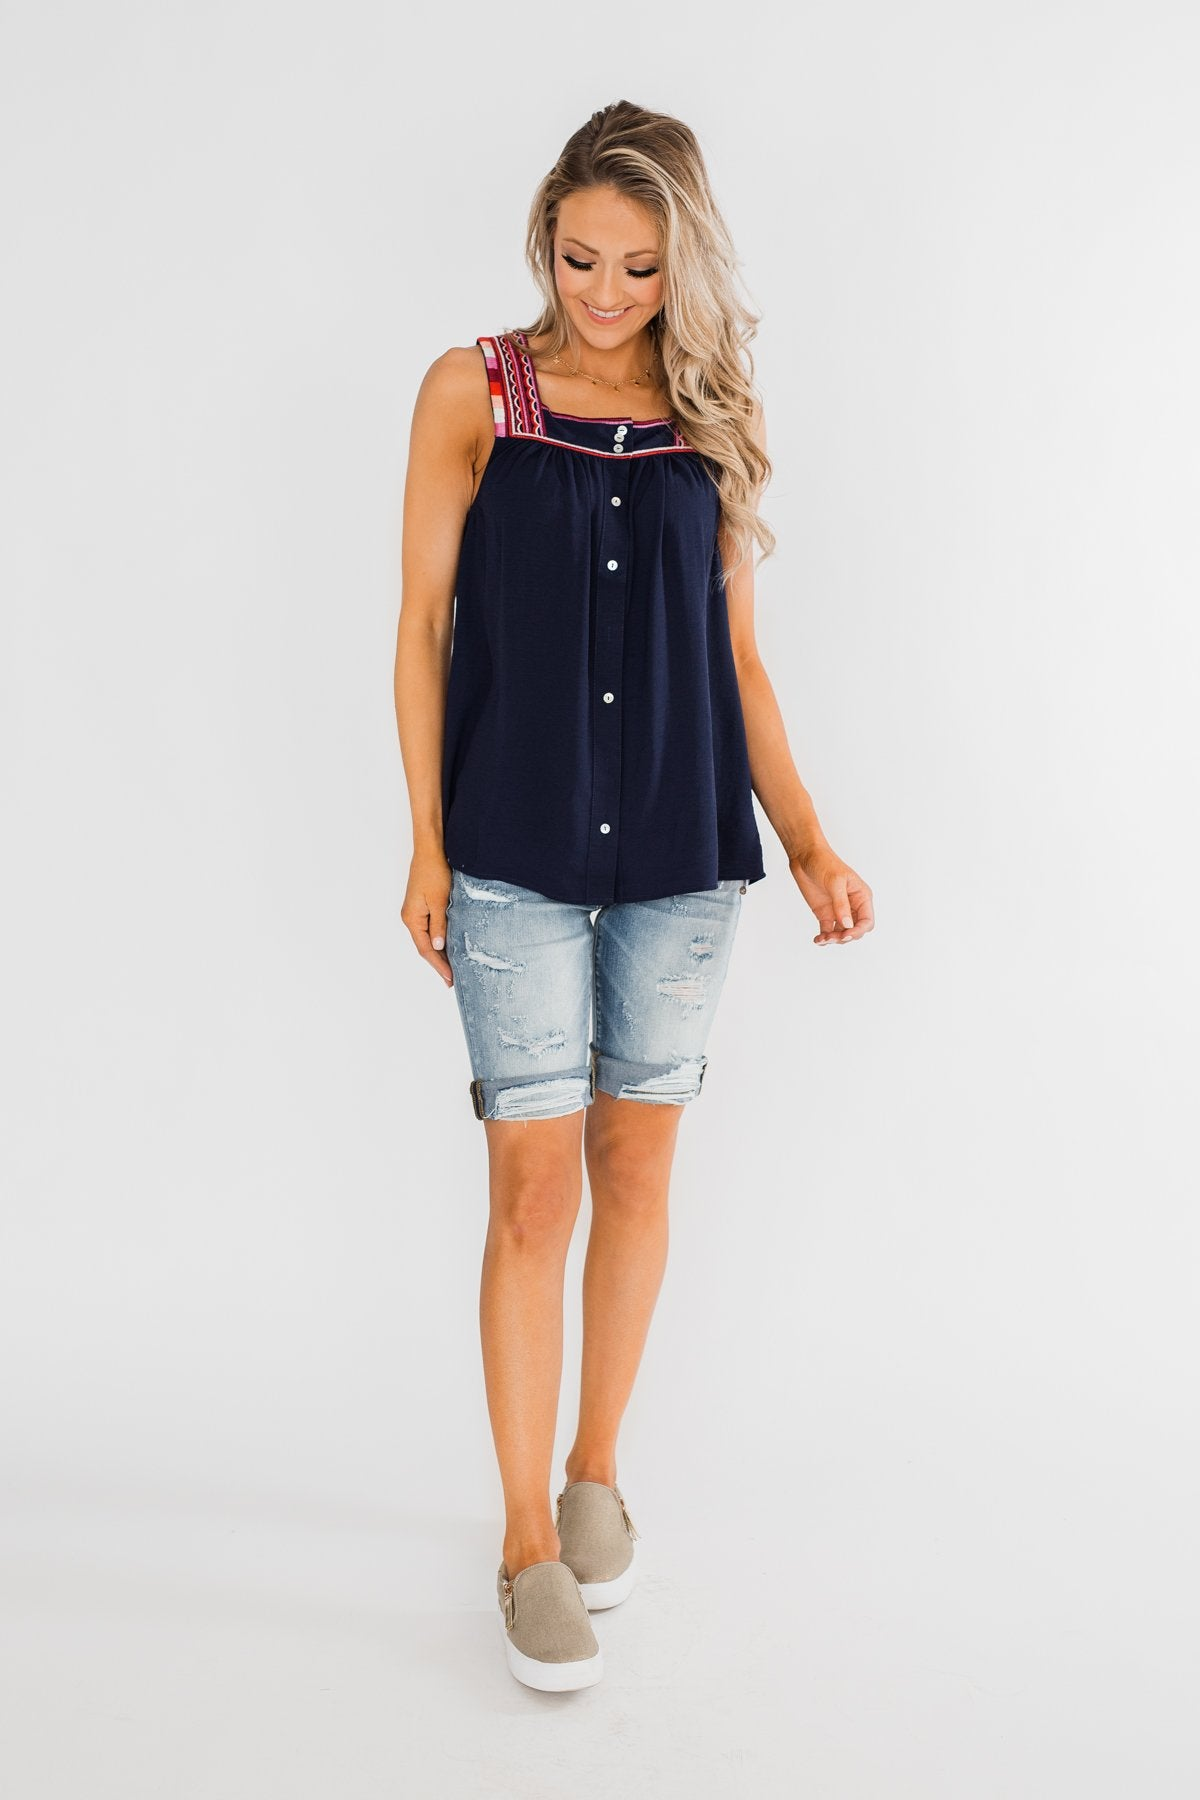 Familiar To You Wide Strap Tank Top- Navy